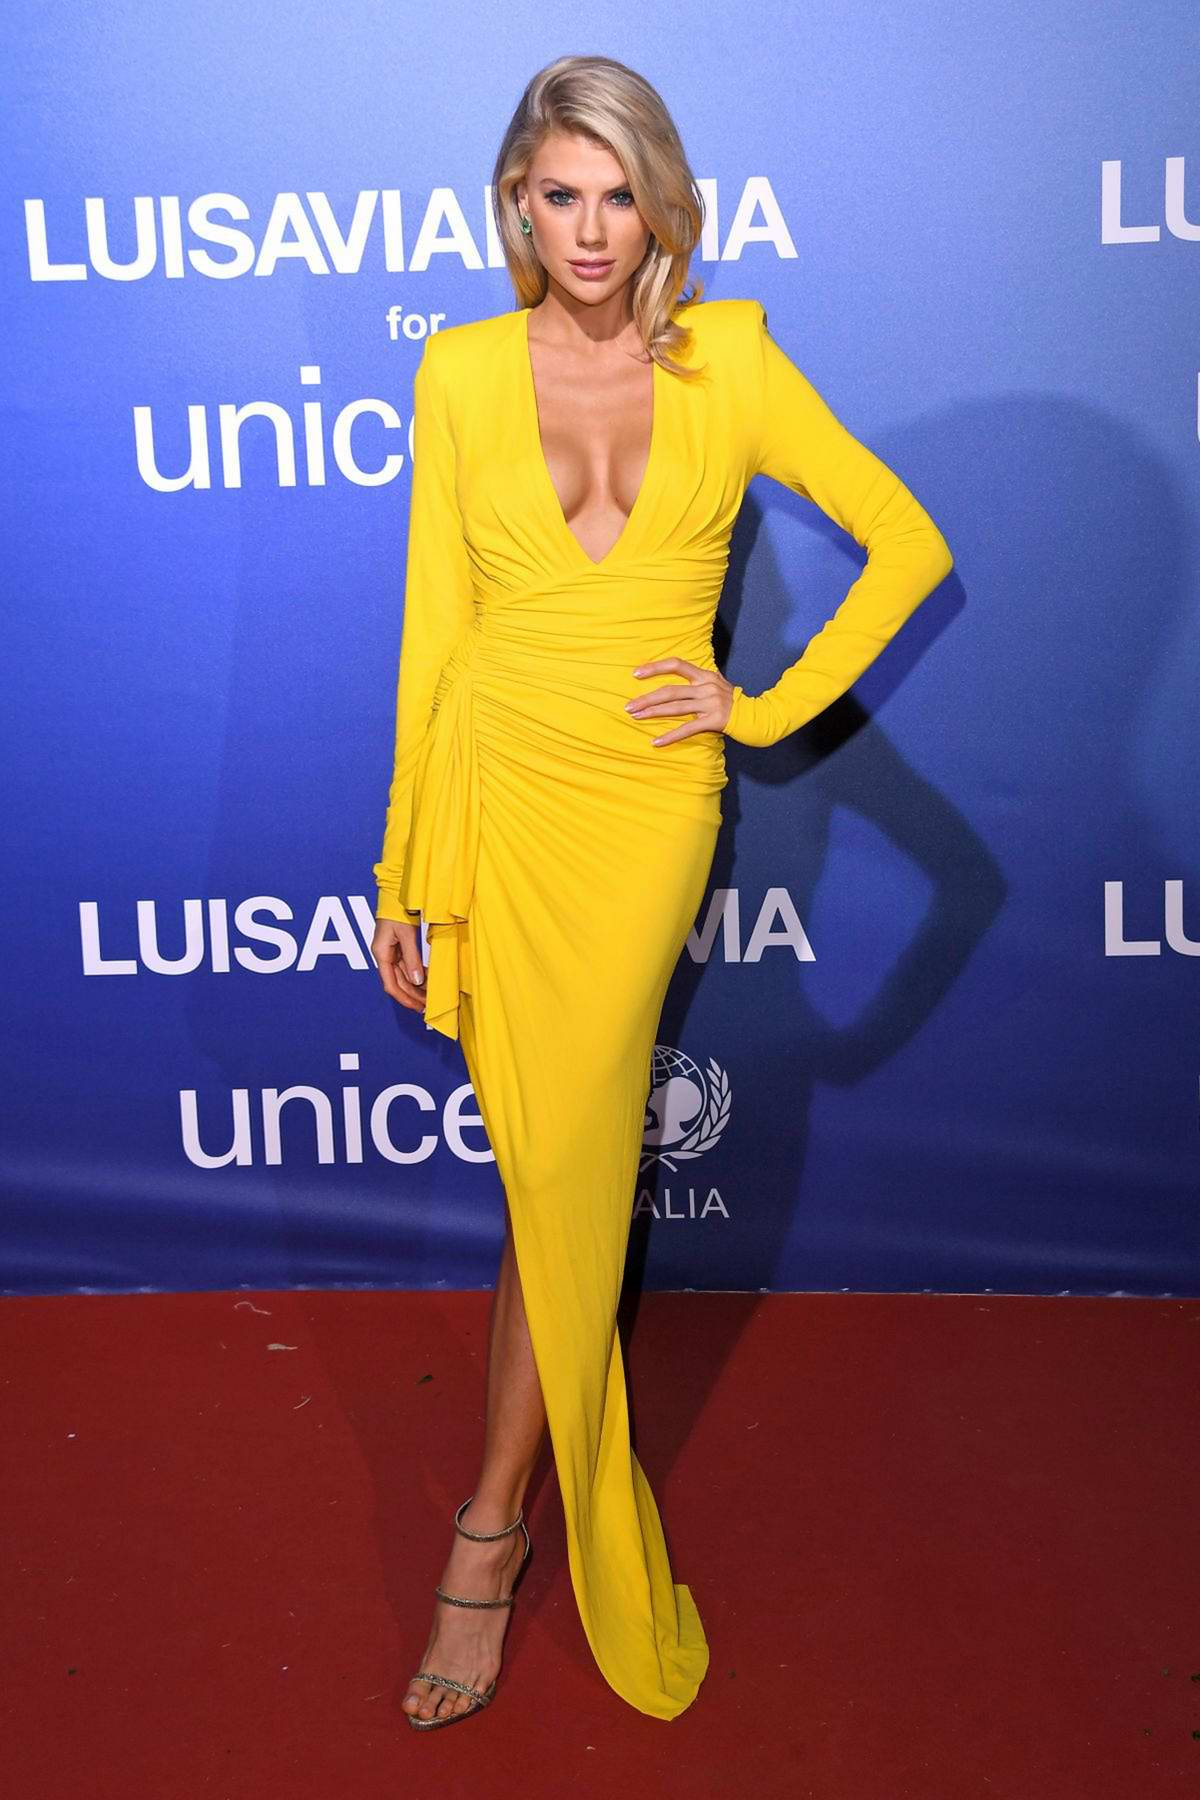 Charlotte McKinney attends the UNICEF Summer Gala Presented by LUISAVIAROMA in Sardinia, Italy